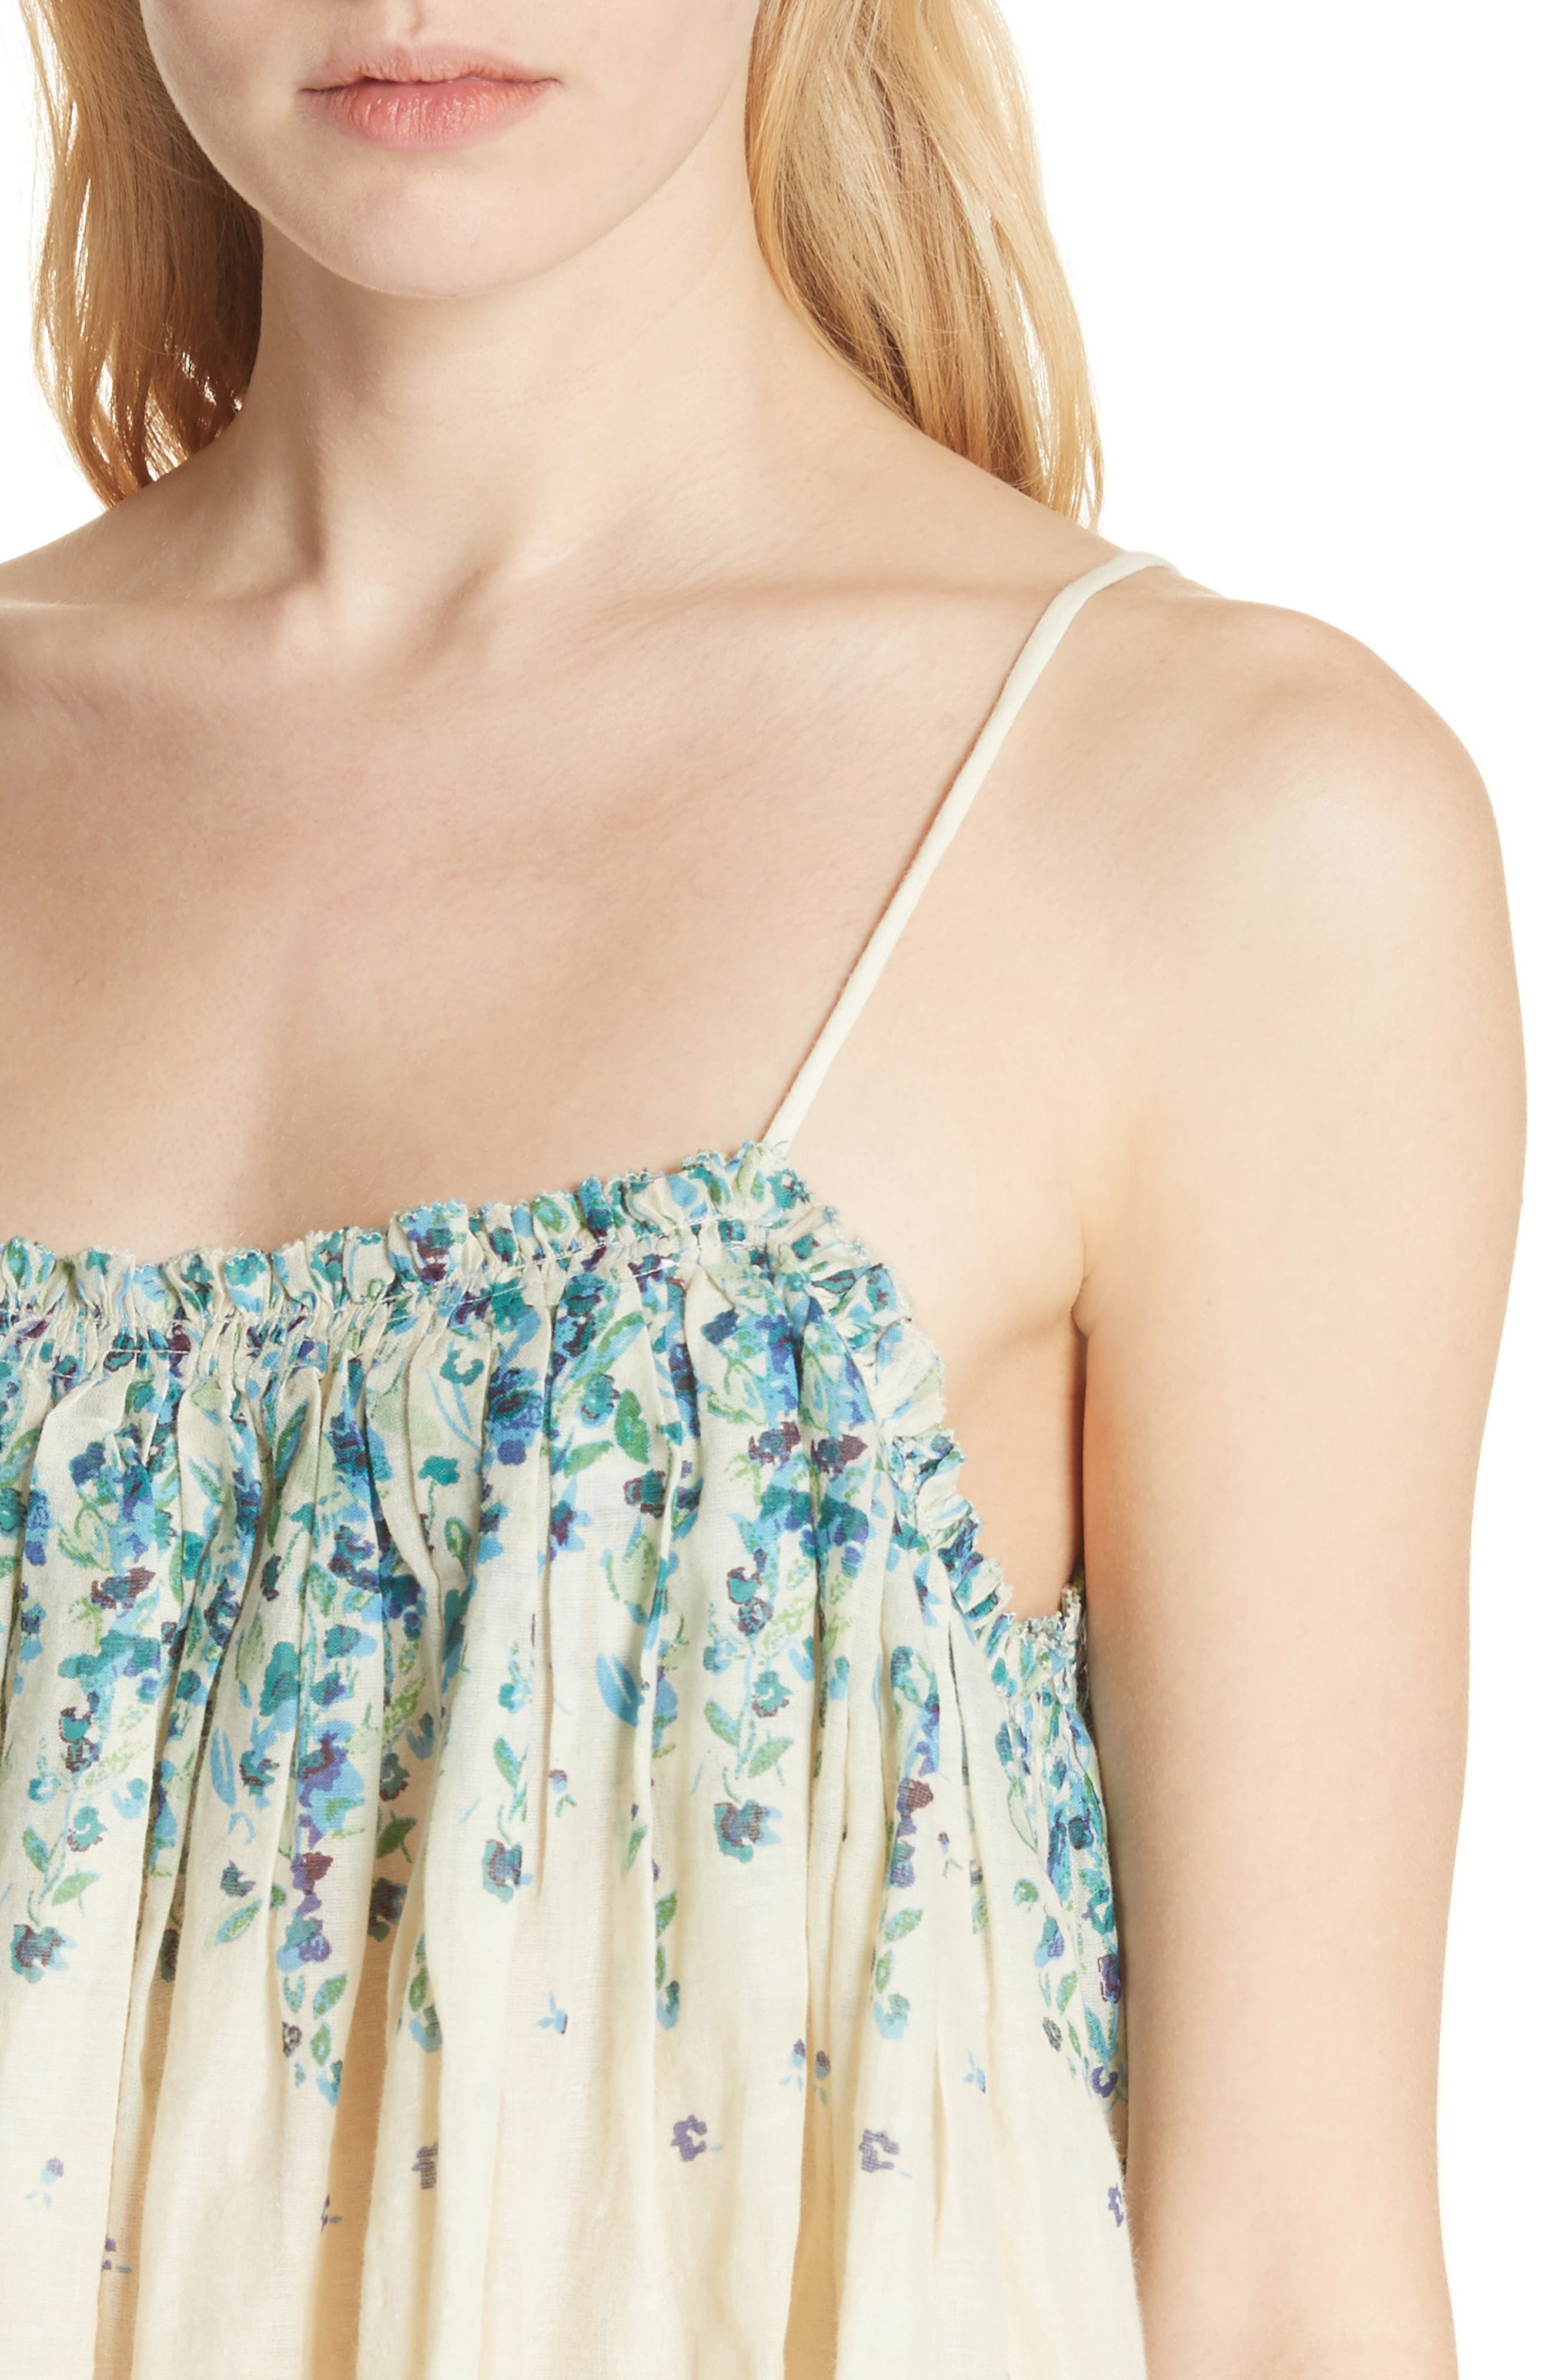 Instant Crush Camisole,                             Alternate thumbnail 4, color,                             Ivory